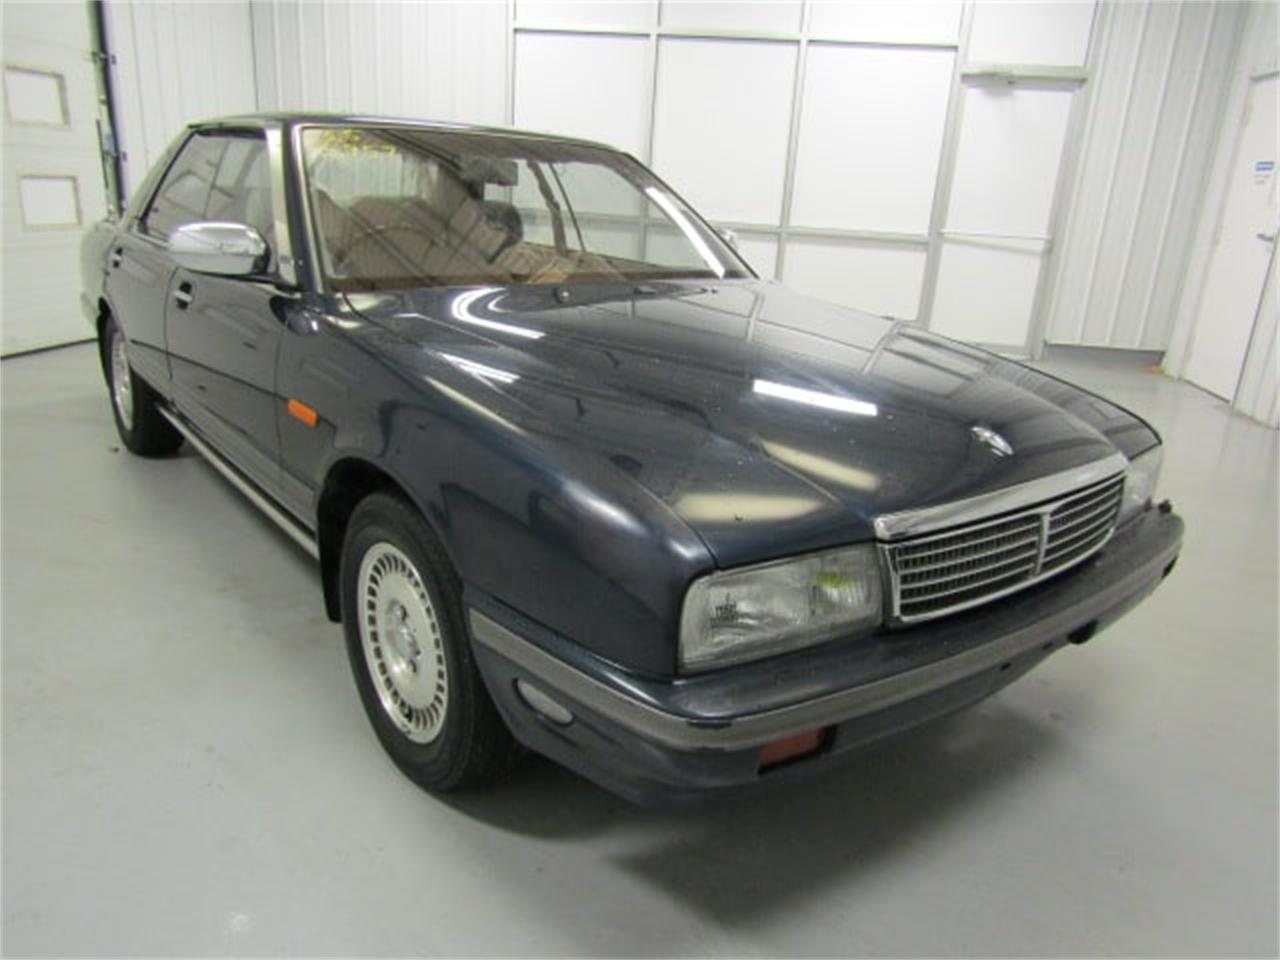 Large Picture of 1991 Nissan Cima Offered by Duncan Imports & Classic Cars - JZ2X